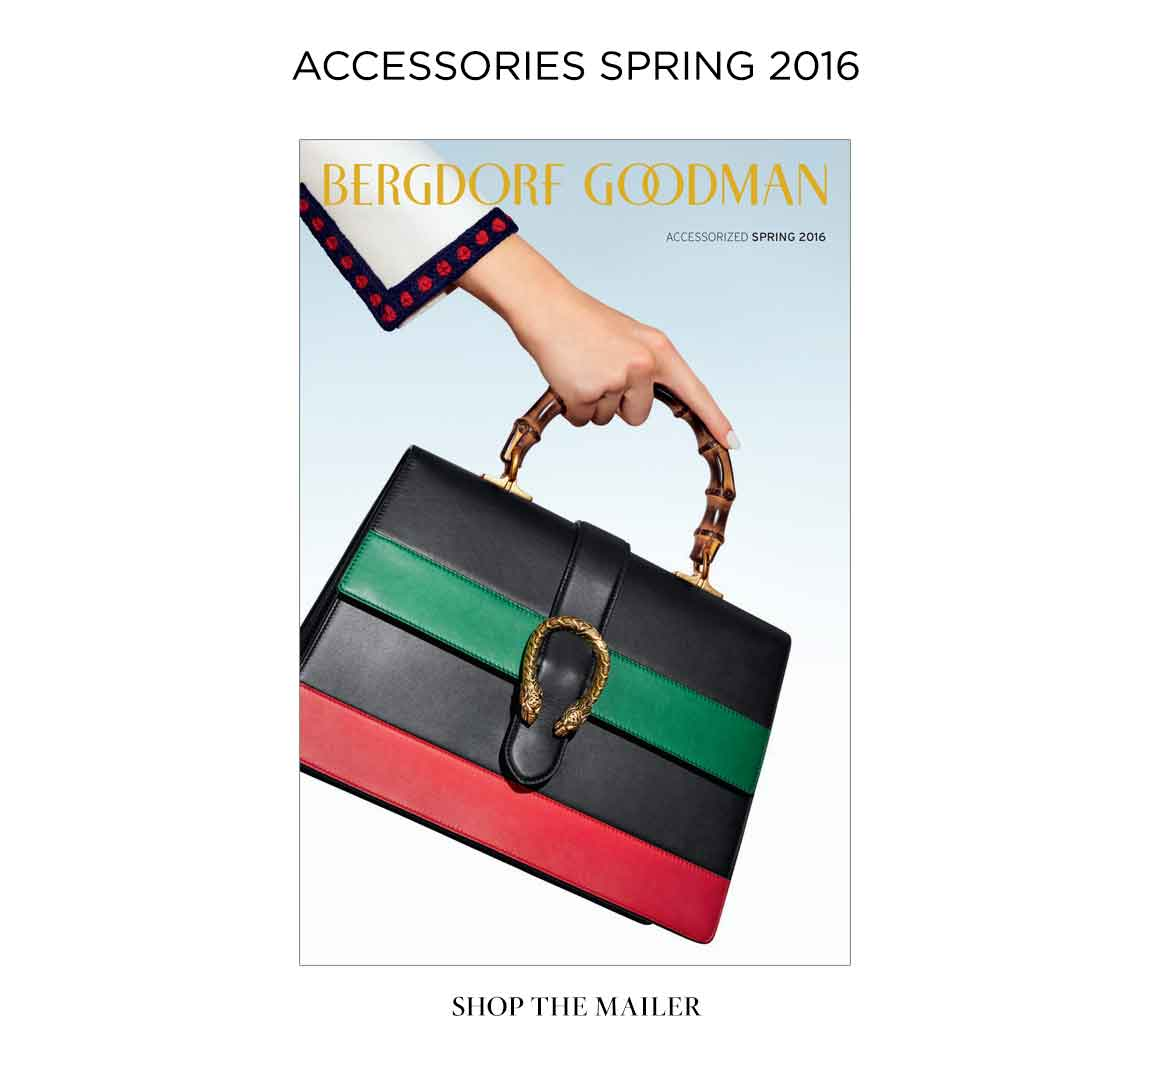 View the Accessories Mailer